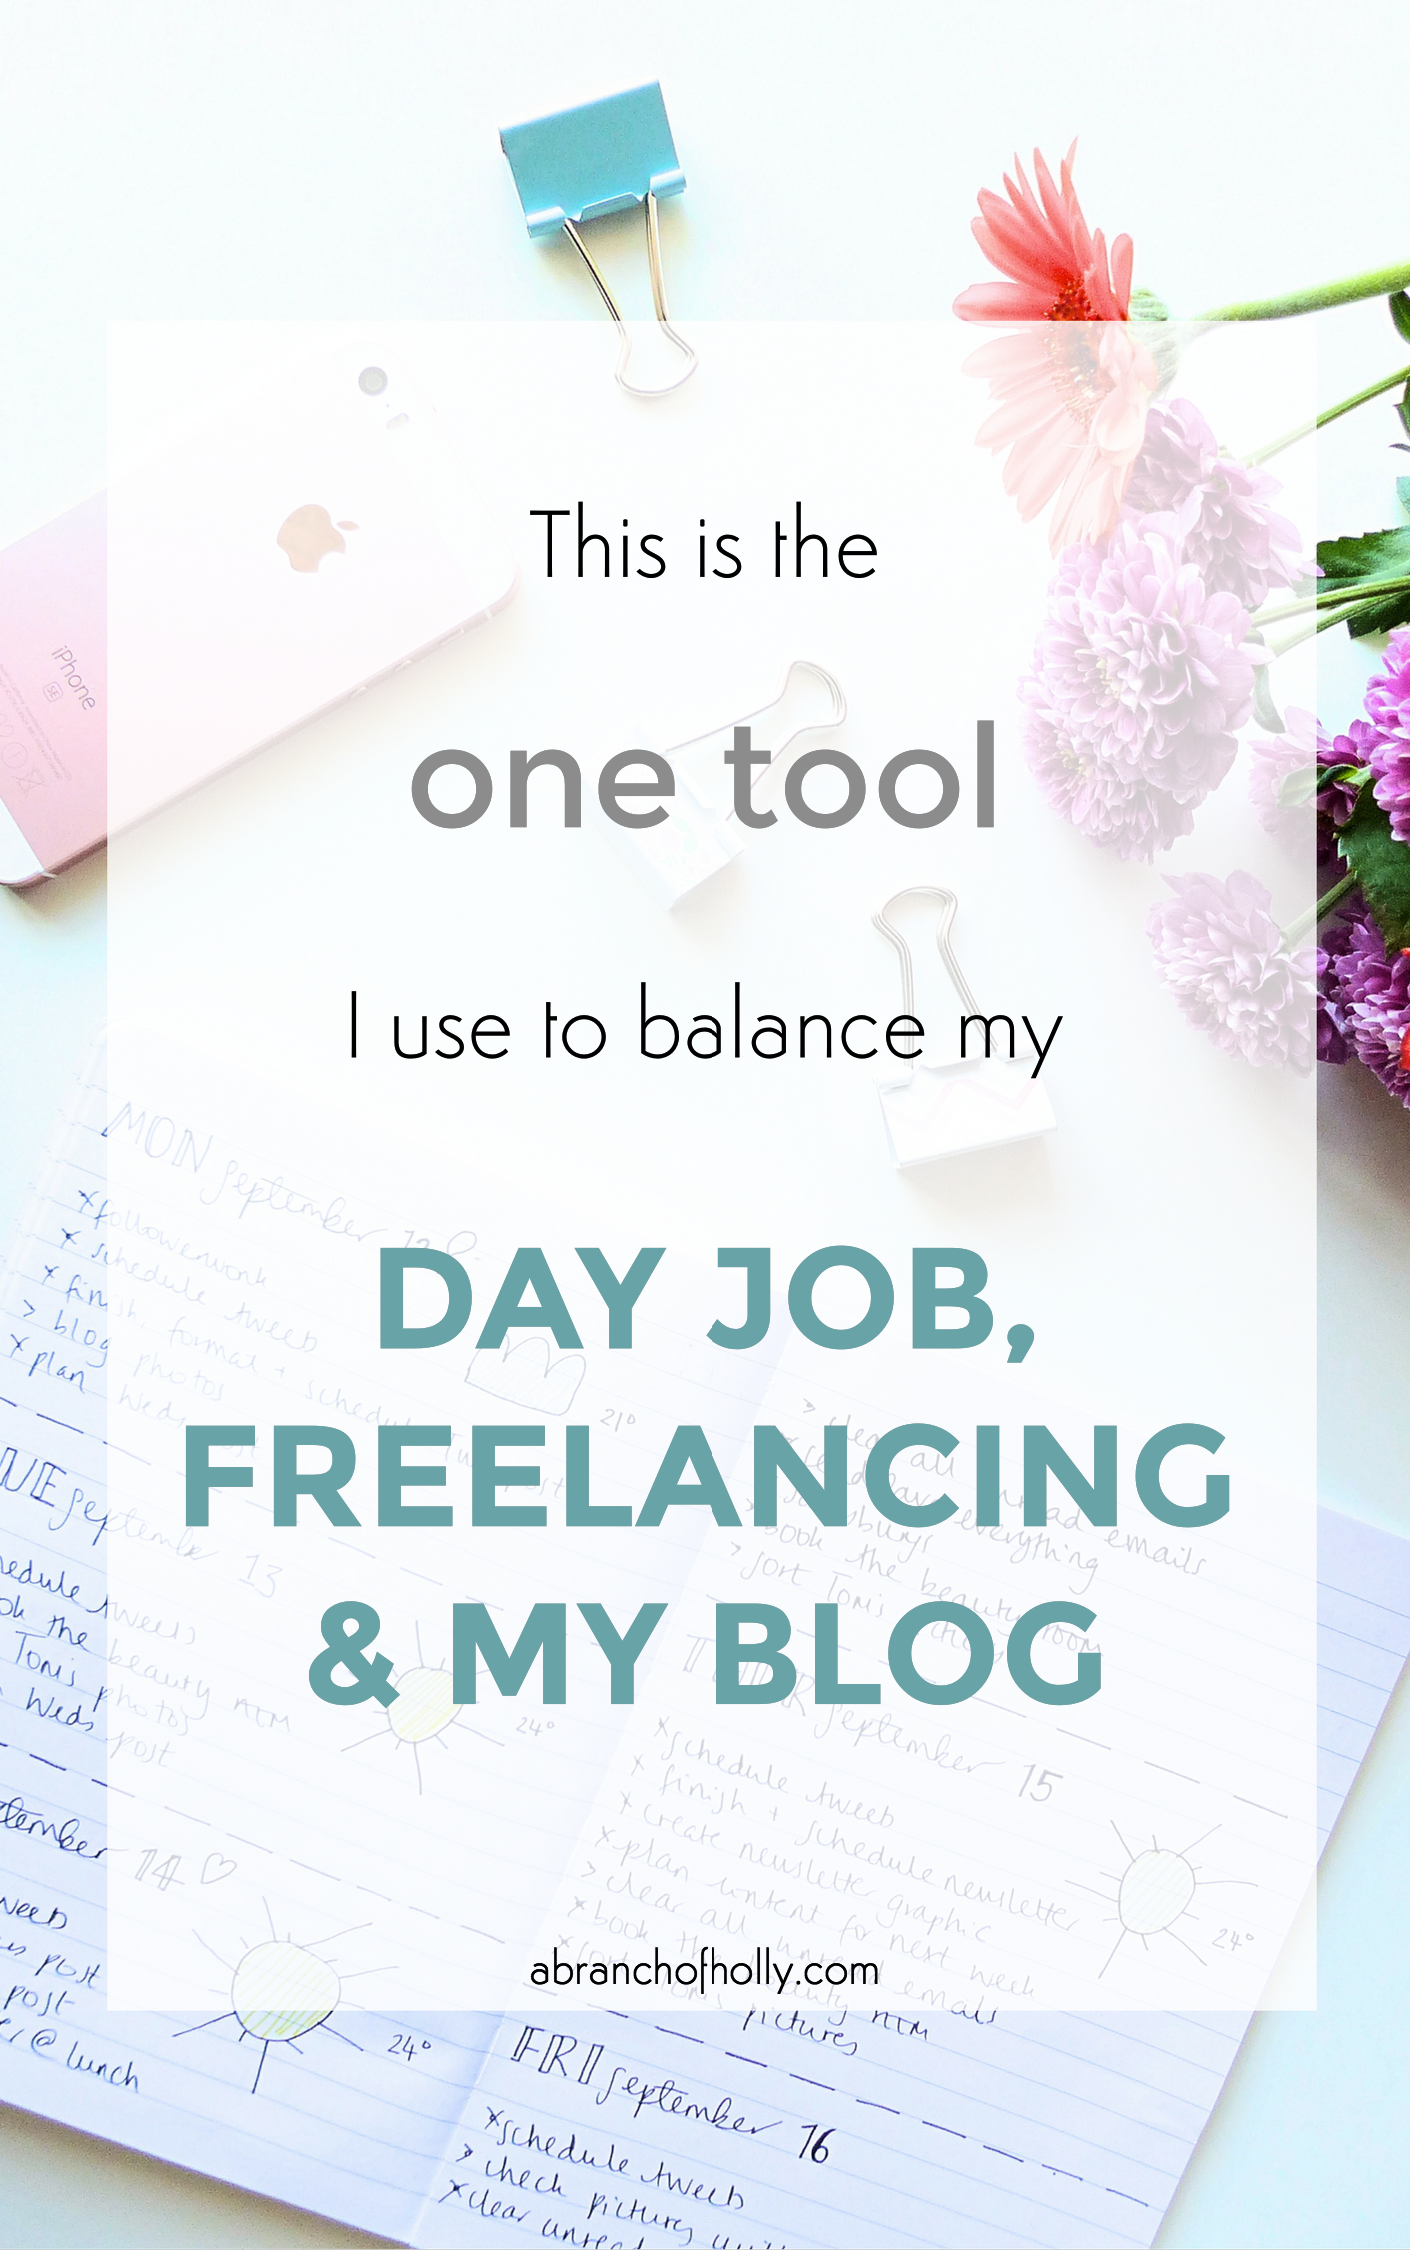 this is the one tool i use to balance my day job, freelancing and my blog